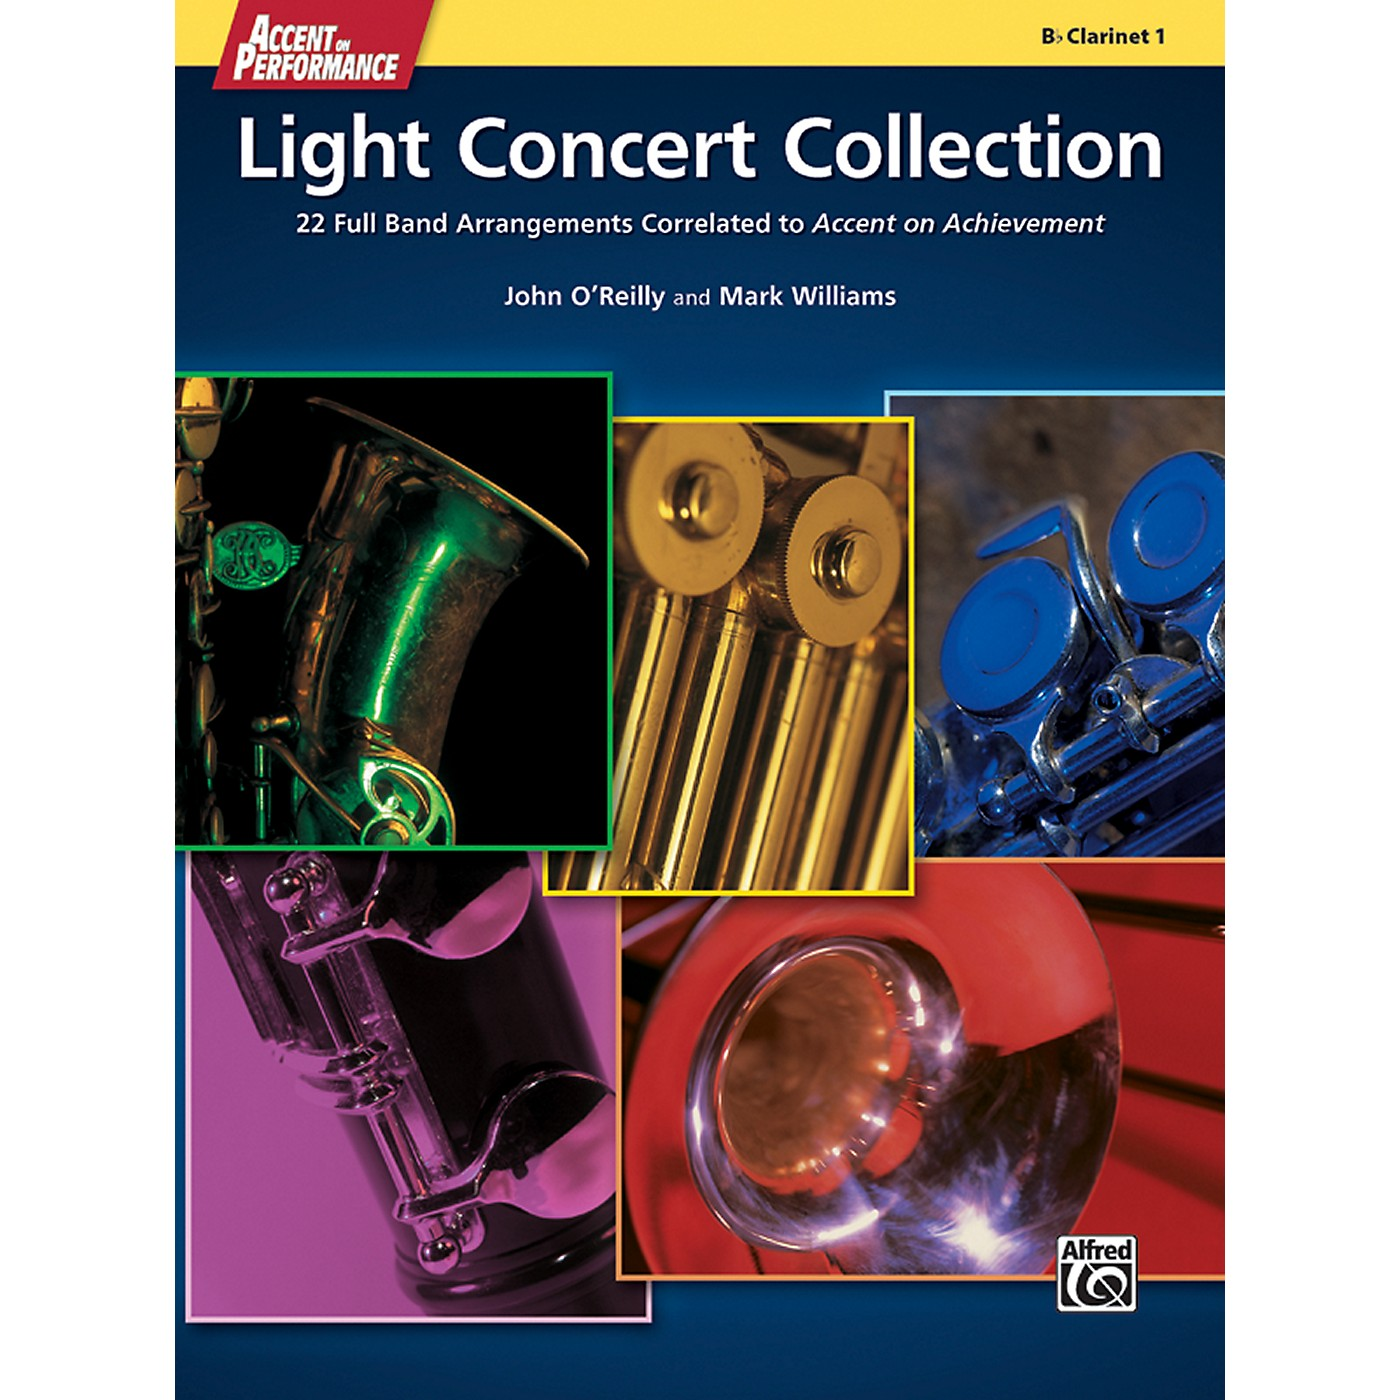 Alfred Accent on Performance Light Concert Collection Clarinet 1 Book thumbnail